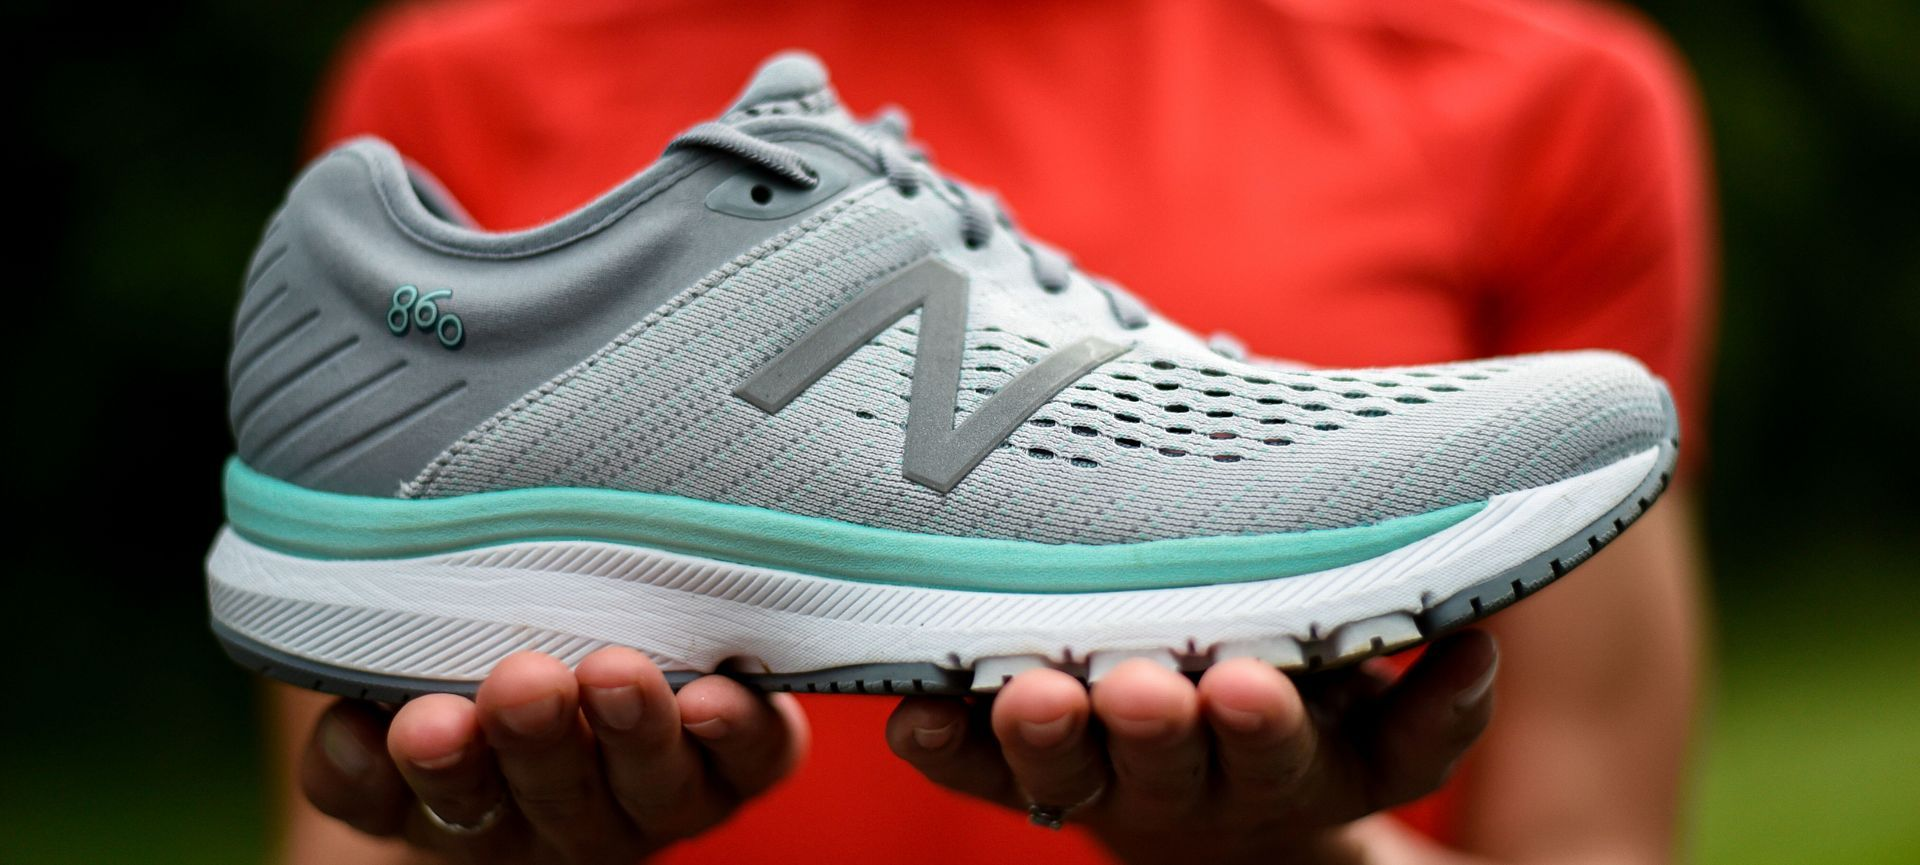 best stabilizing running shoes